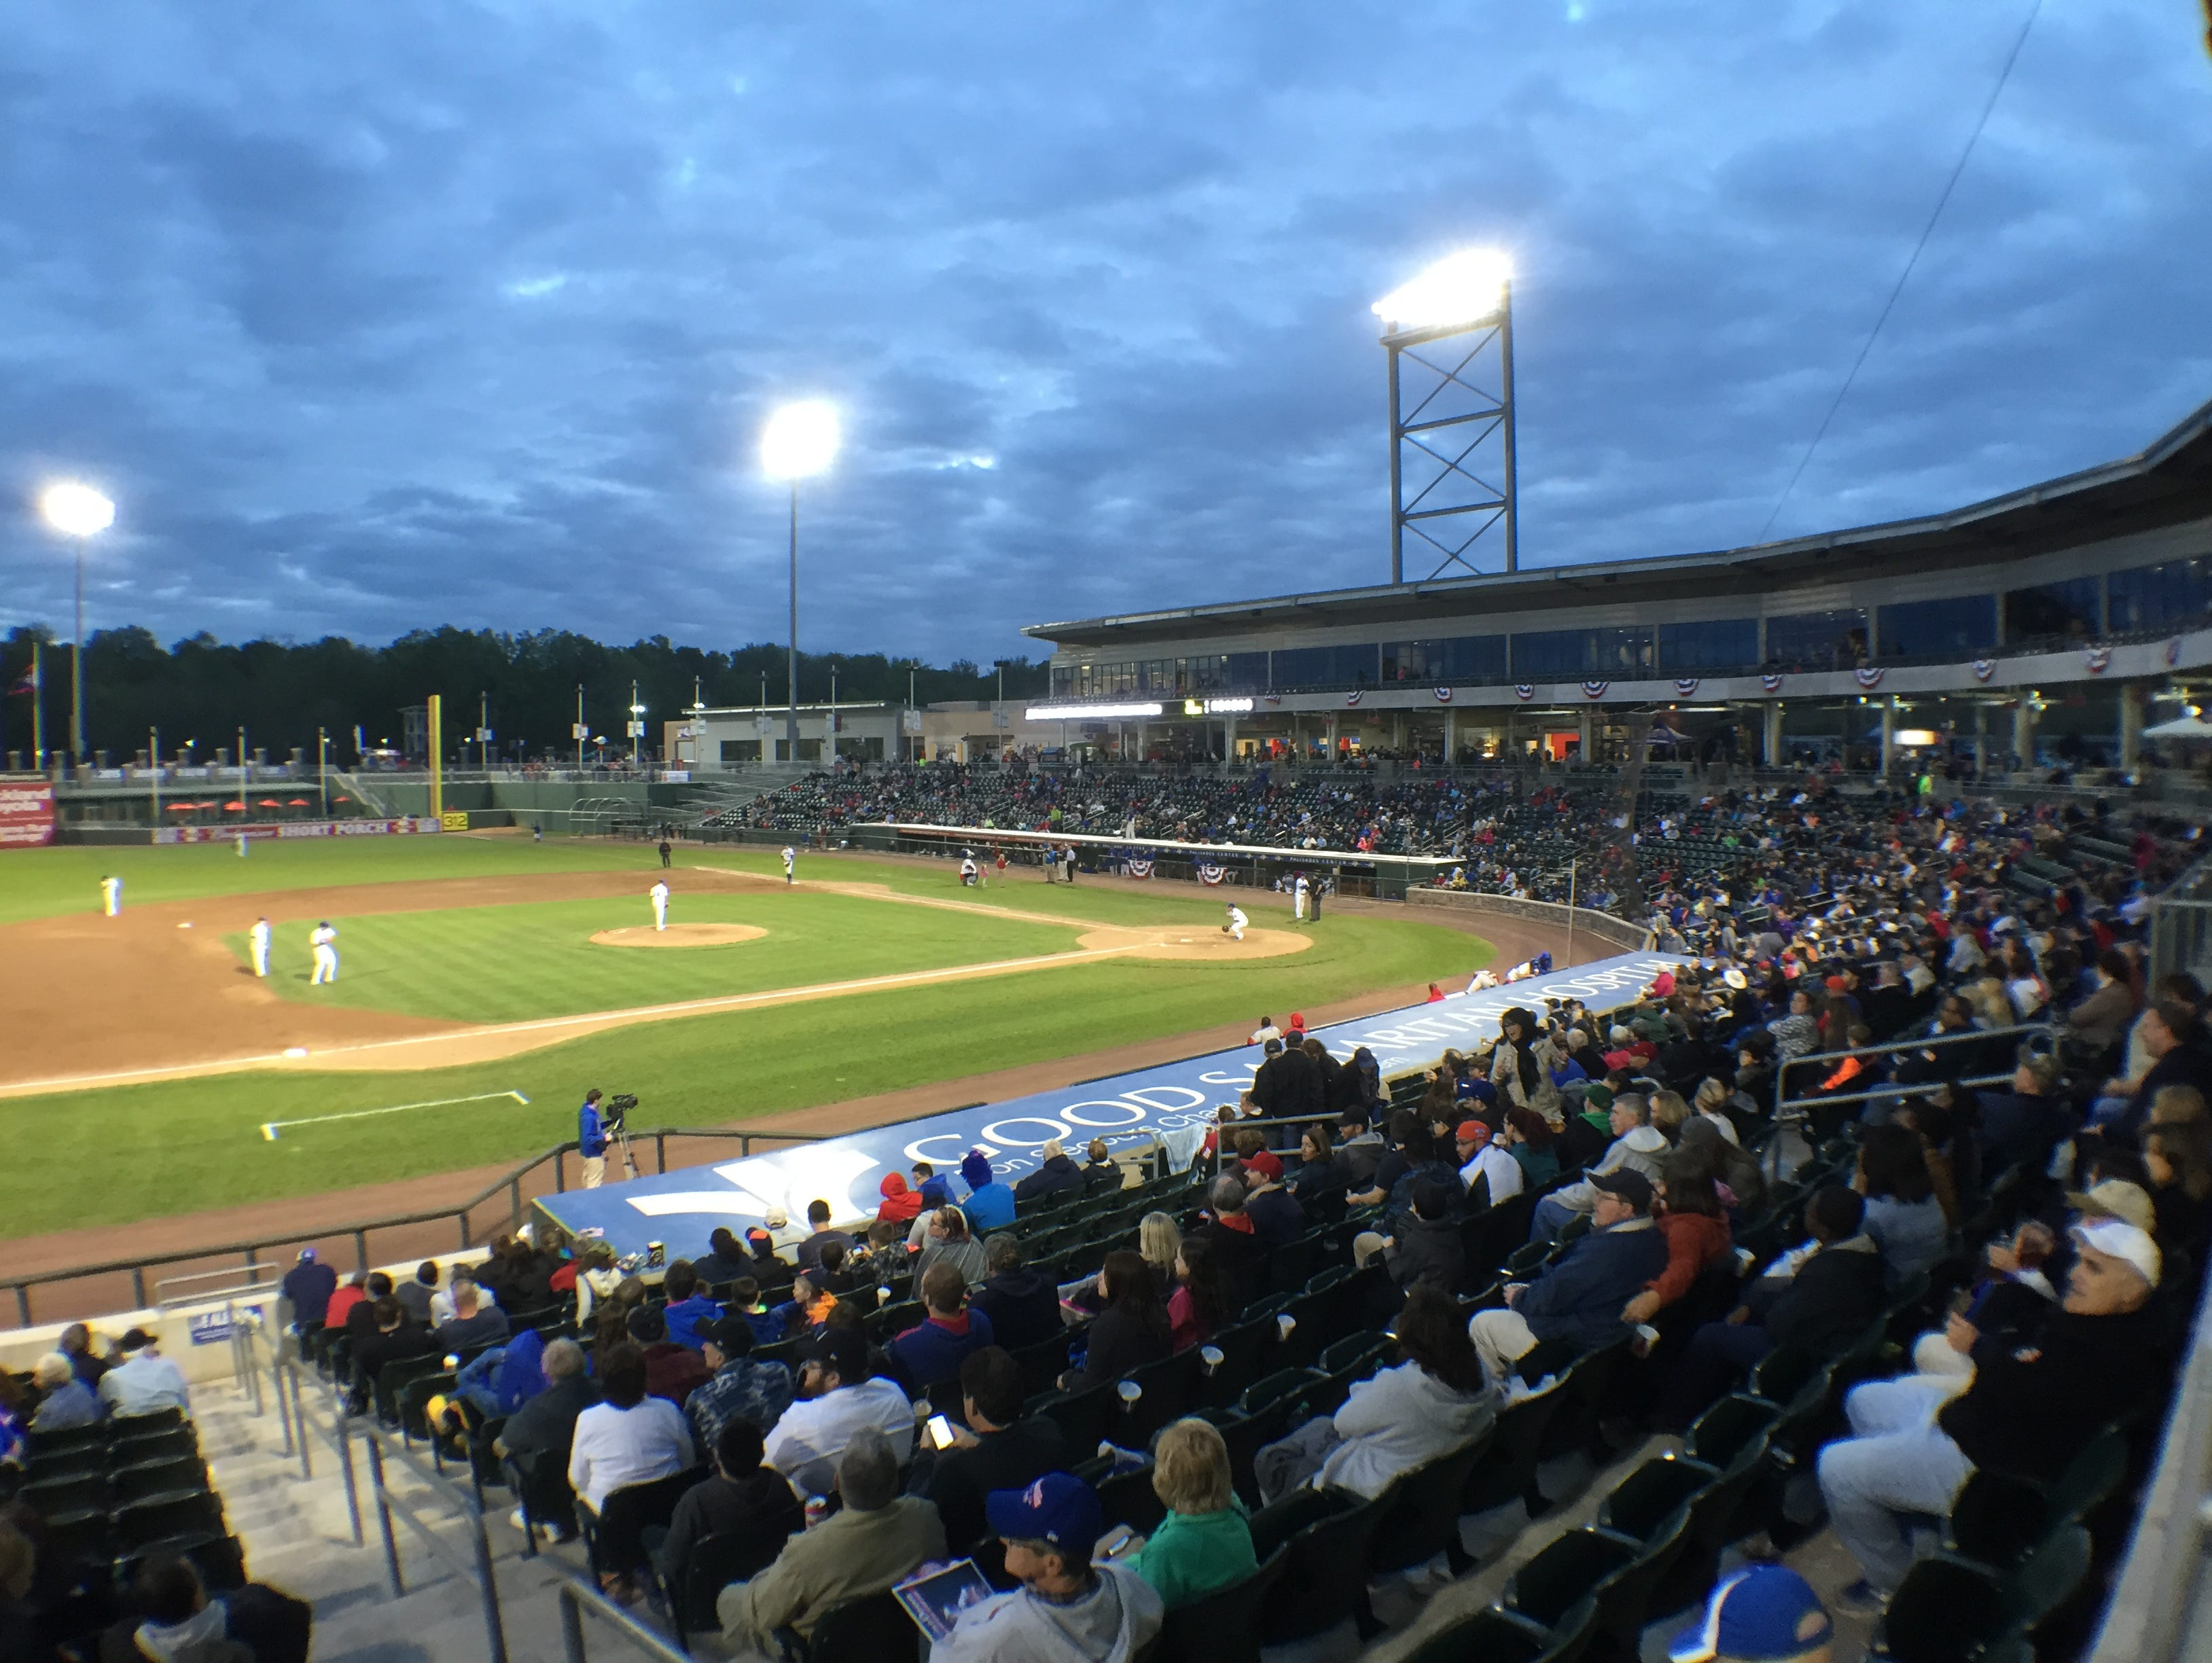 The Rockland Boulders played the Trois-Rivieres Aigles during their season opener at Provident Bank Park May 21, 2015.